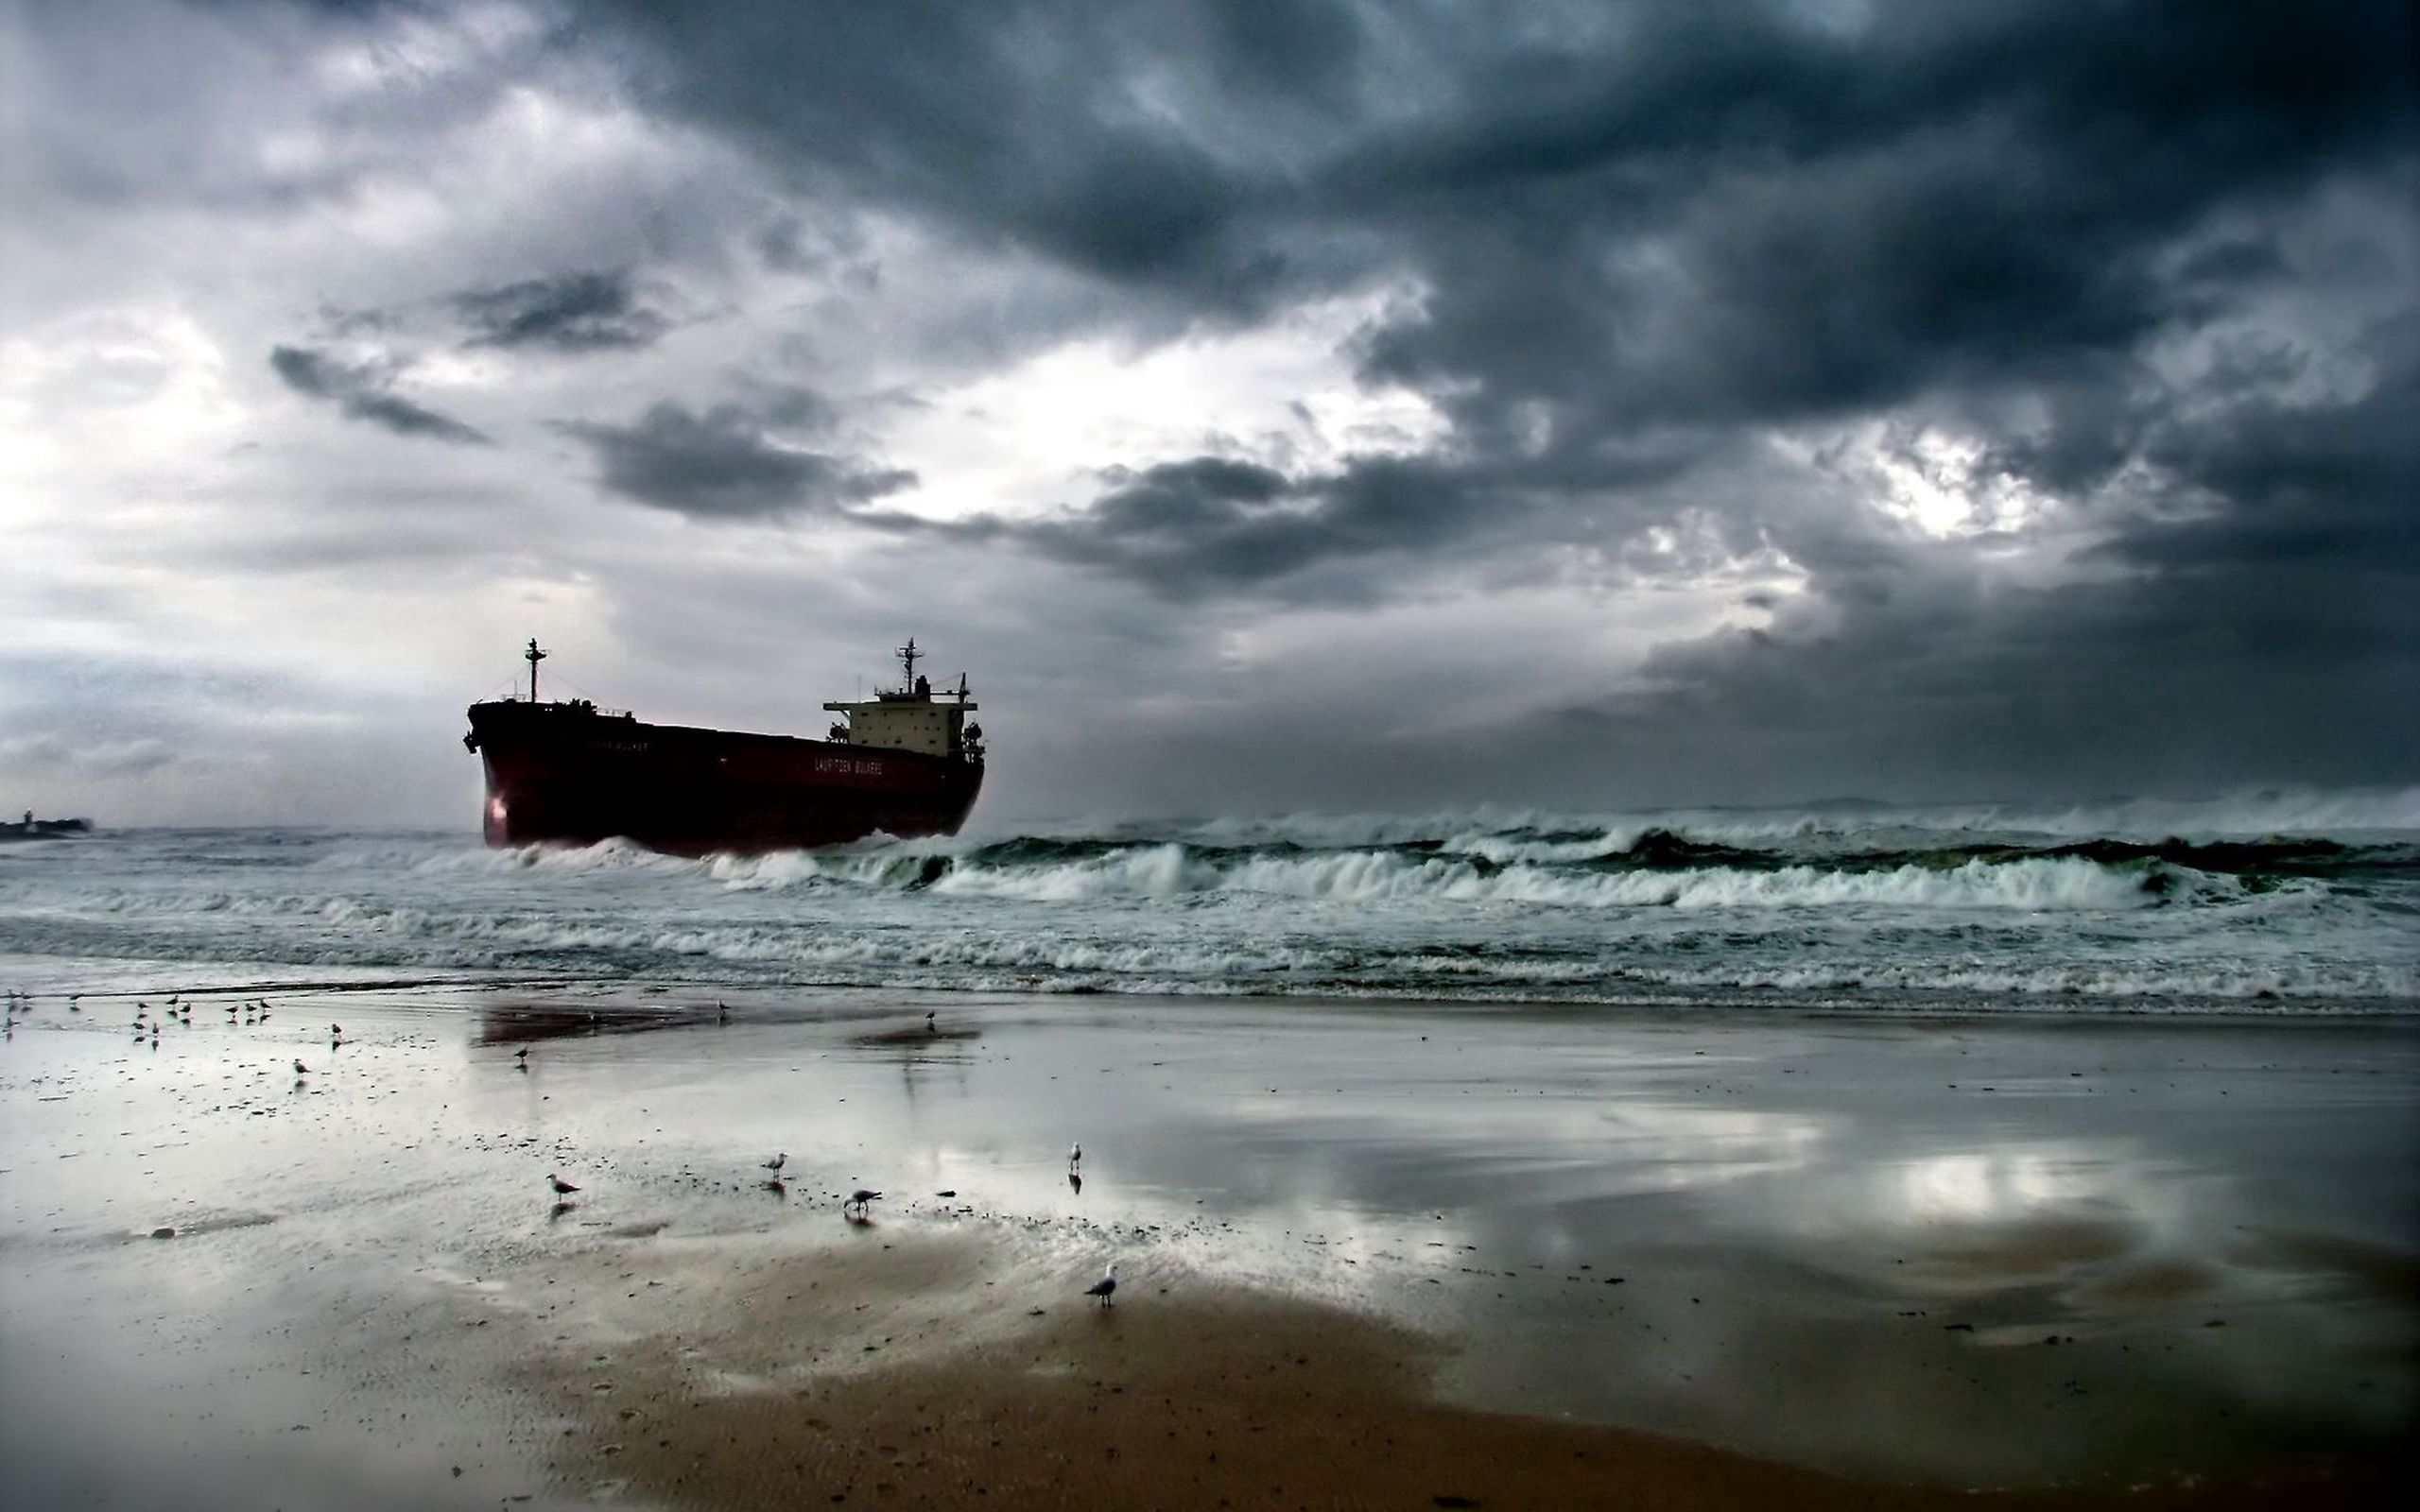 67784 download wallpaper Nature, Sea, Shore, Bank, Sand, Seagulls screensavers and pictures for free